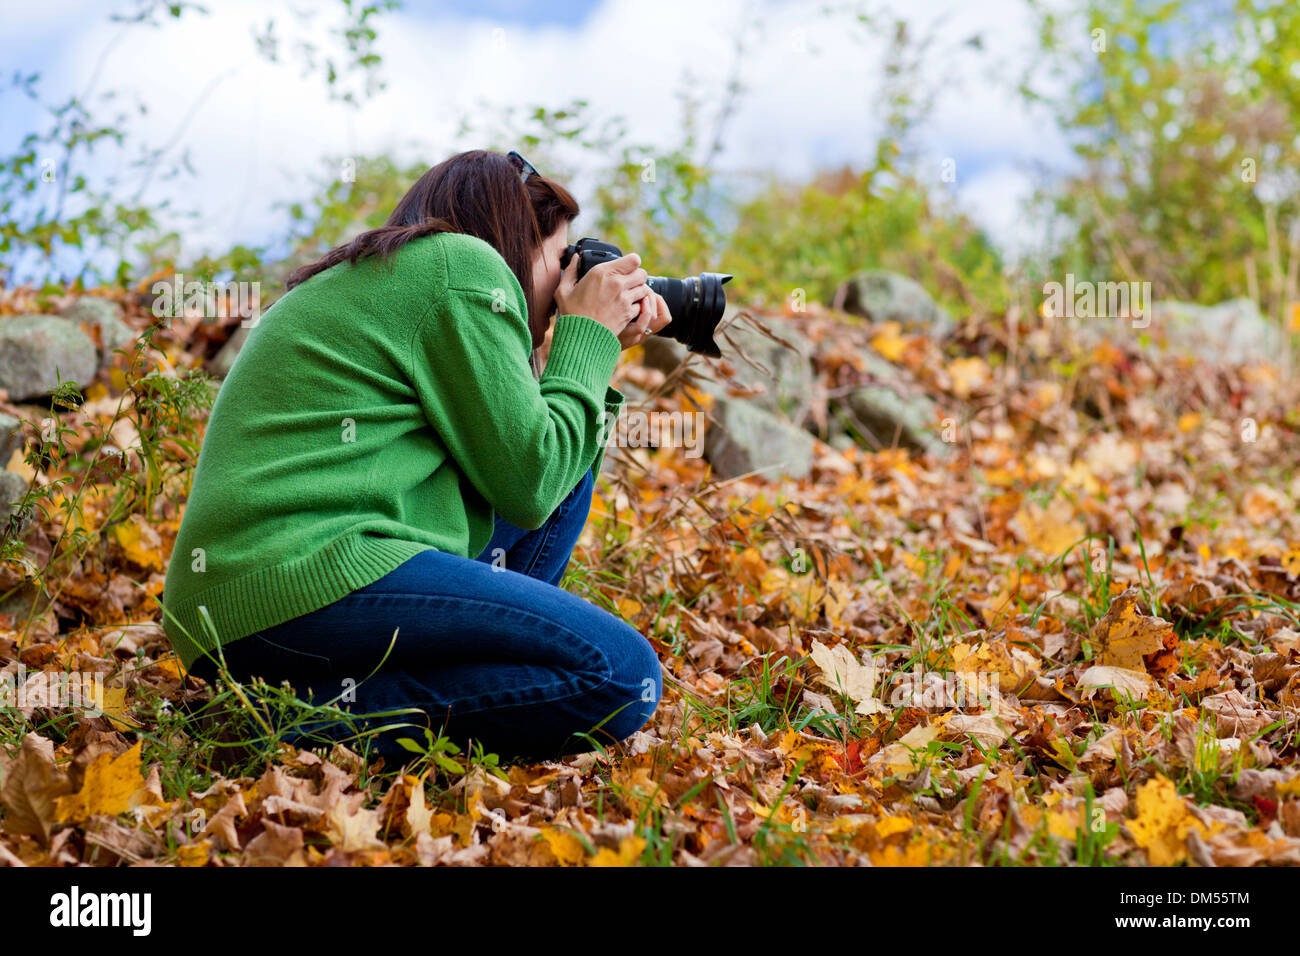 Female photographer crouching in fall leaves to take a picture  - Stock Image